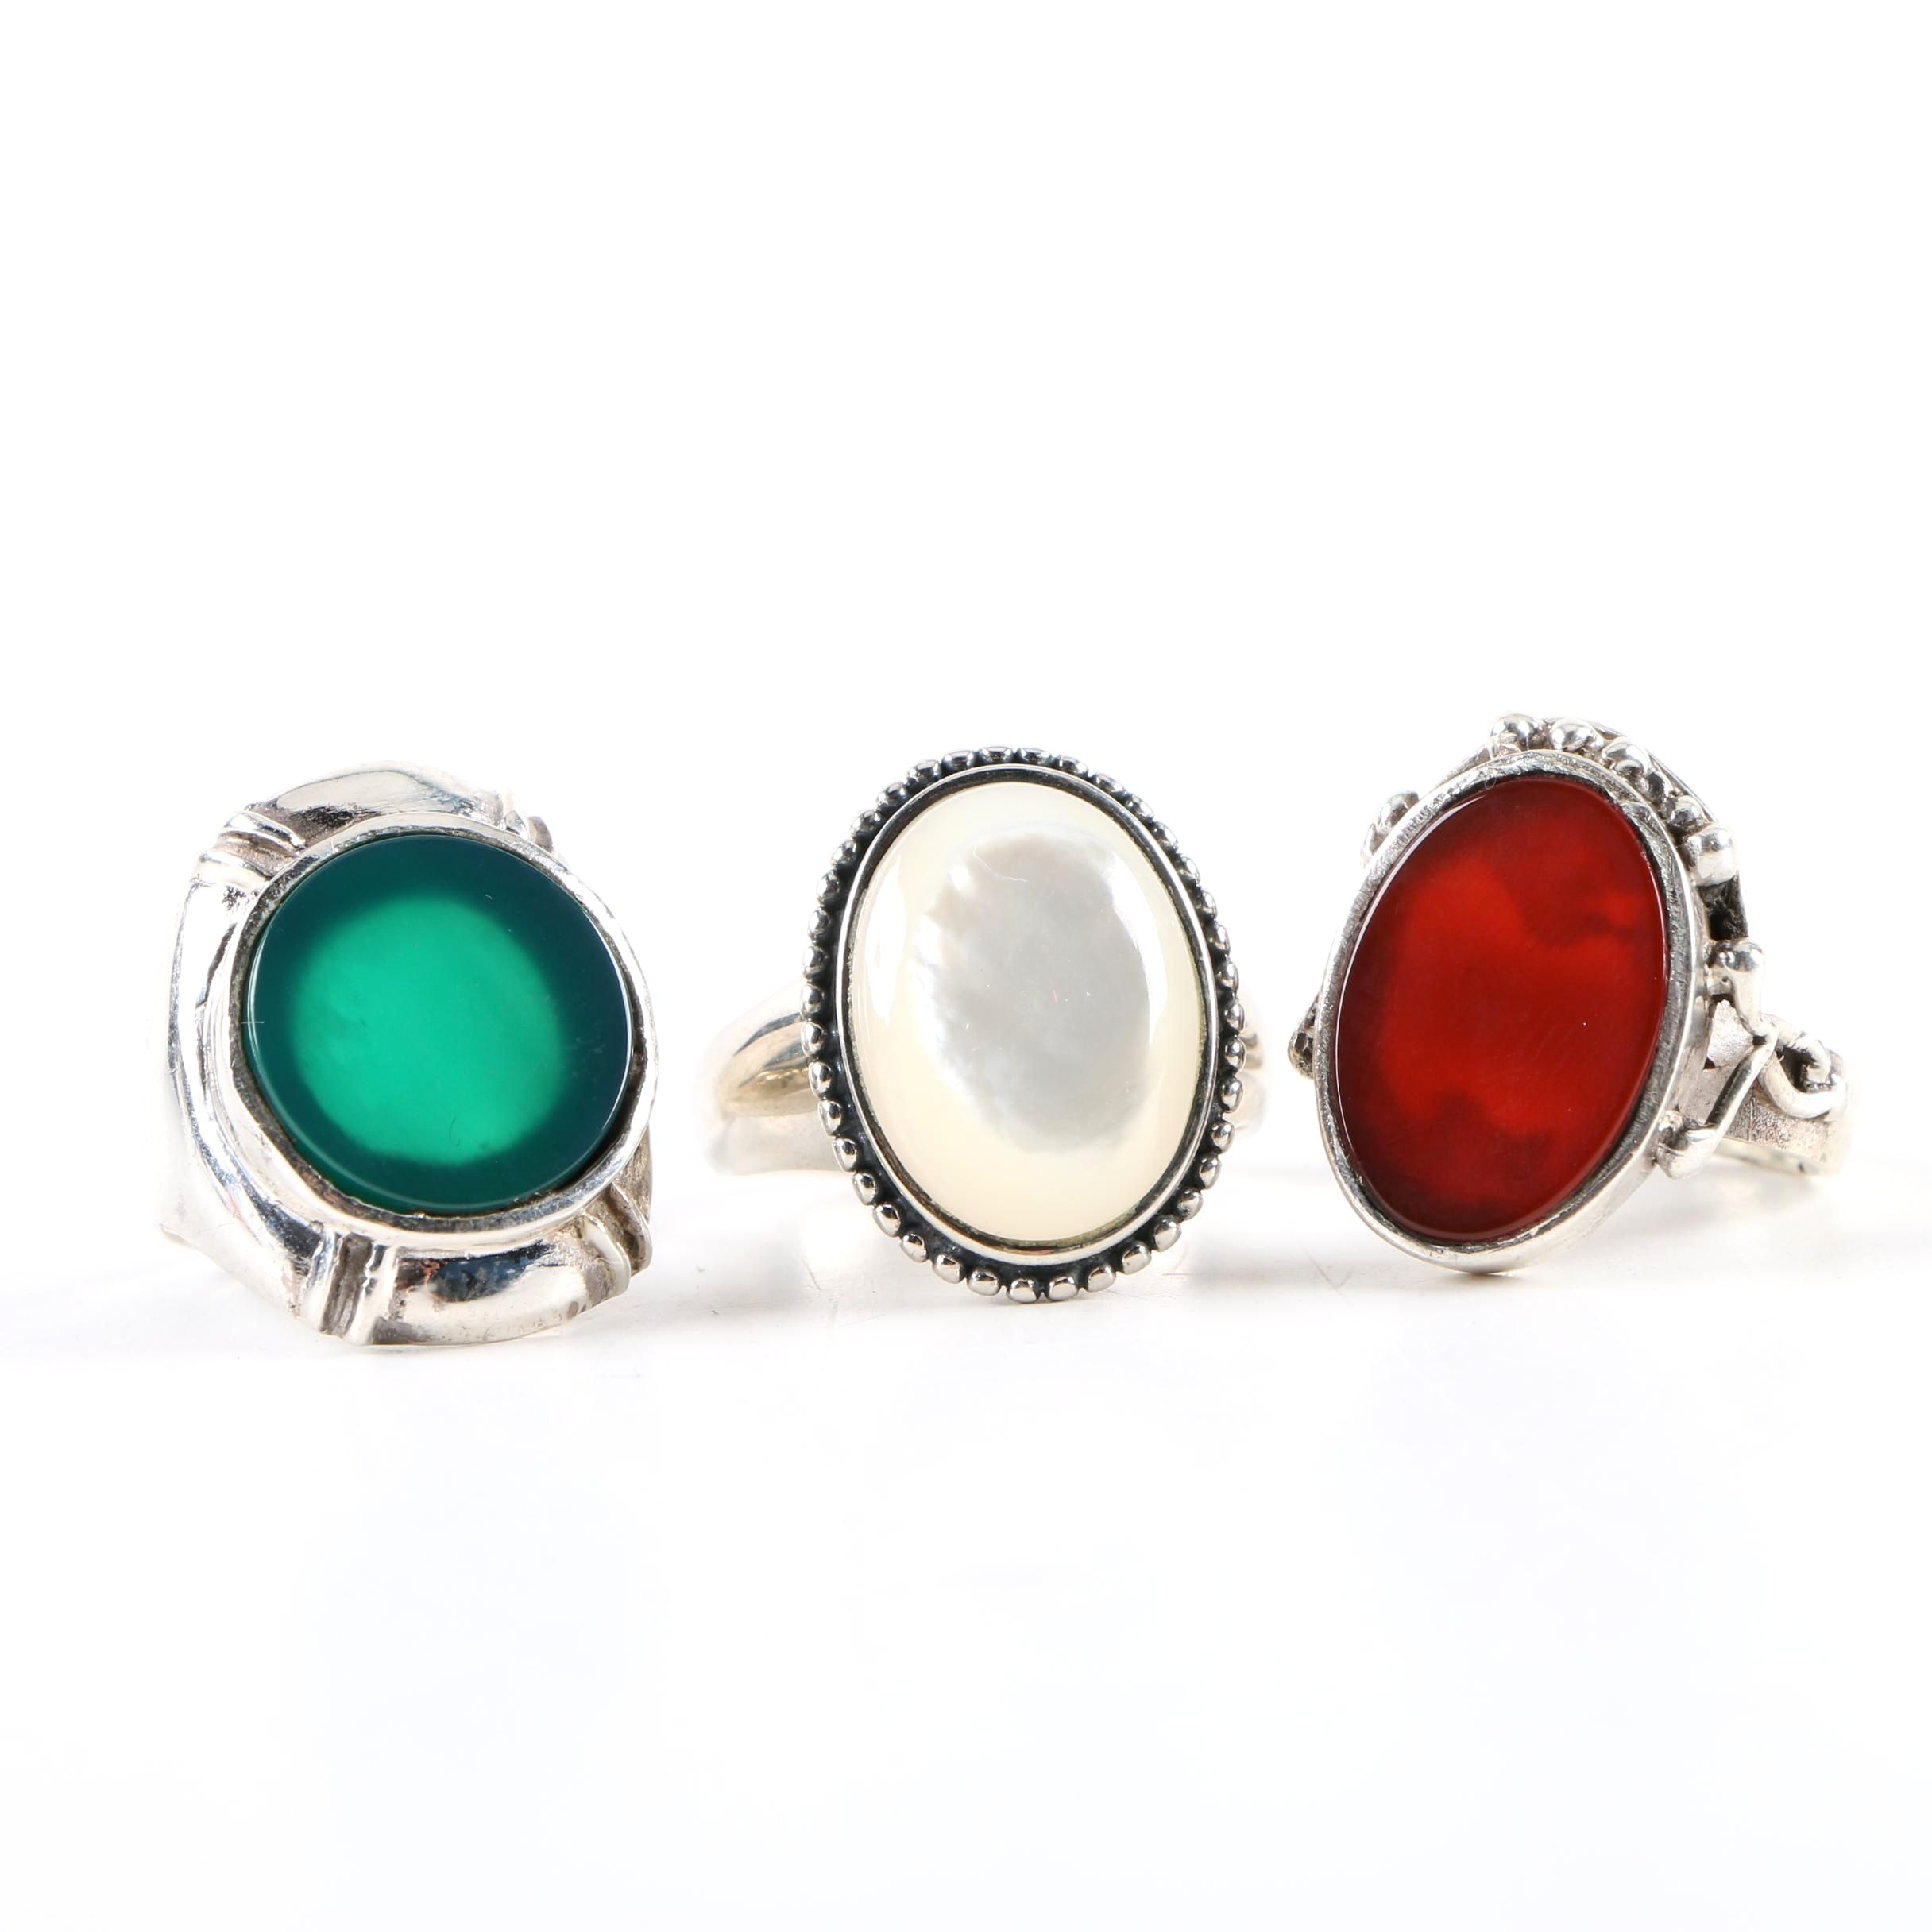 Sterling Silver Ring Assortment Including Mother of Pearl and Chalcedony